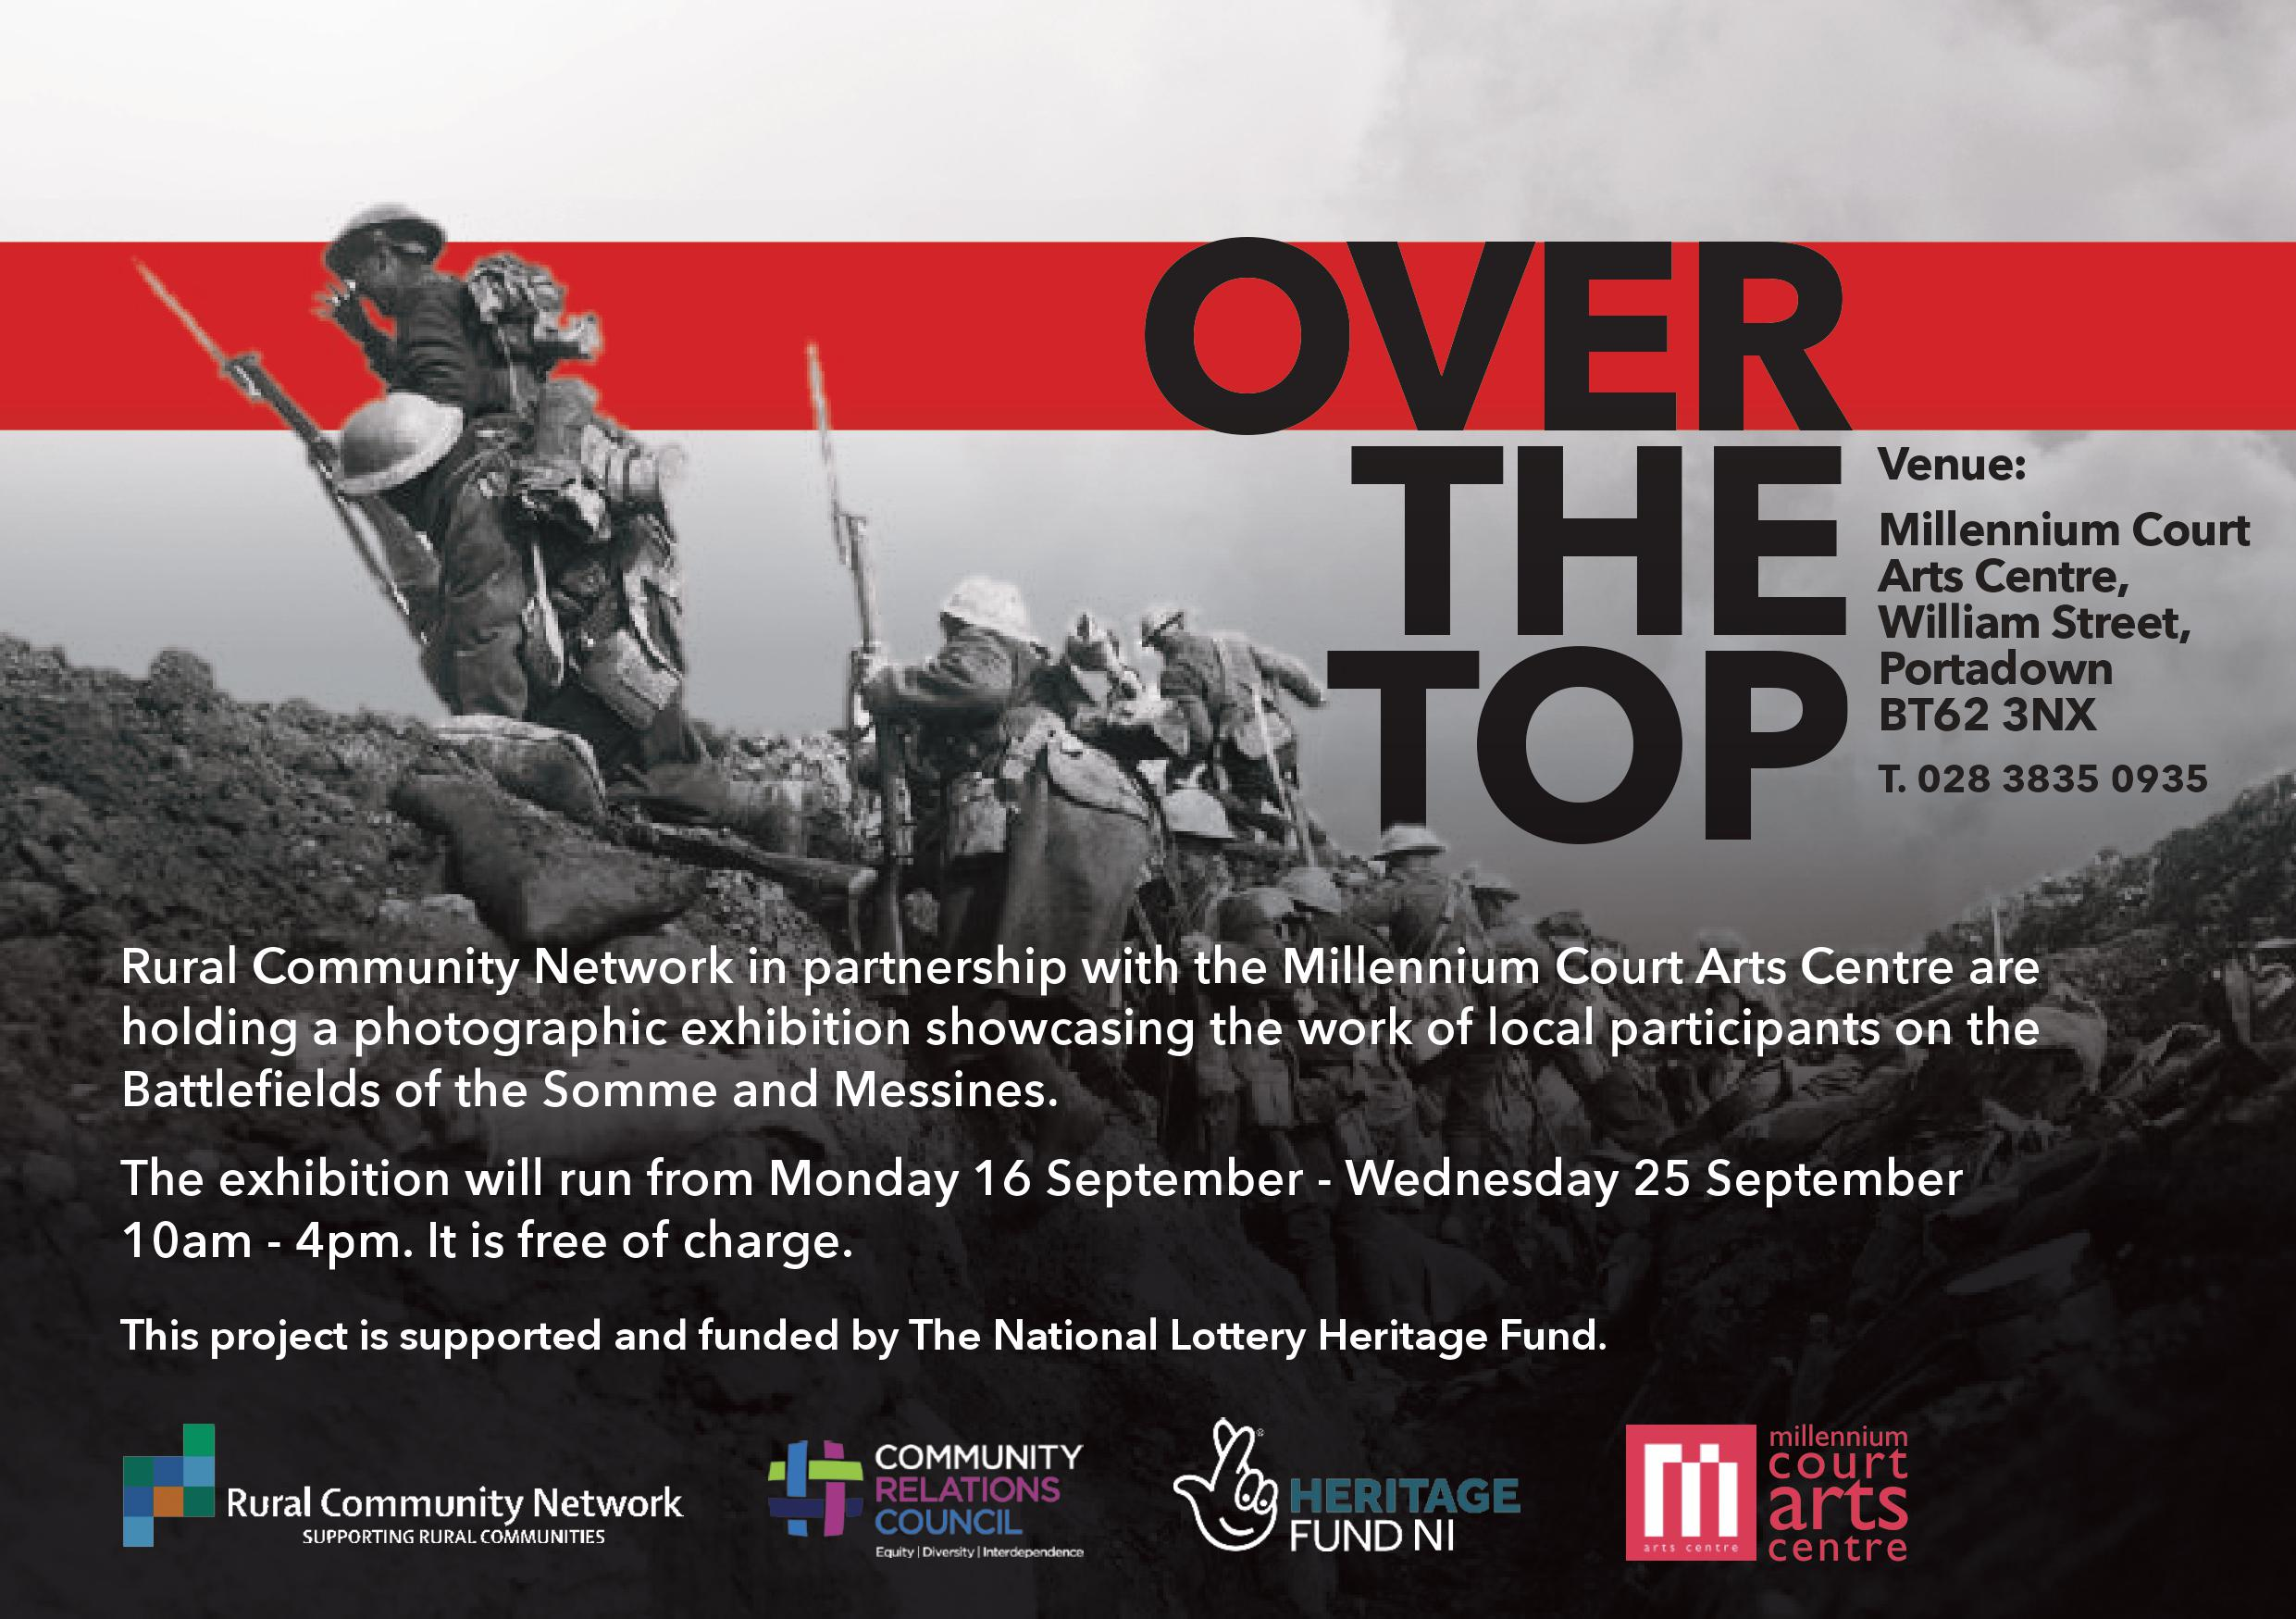 Flyer for Over The Top exhibition | RCC NI